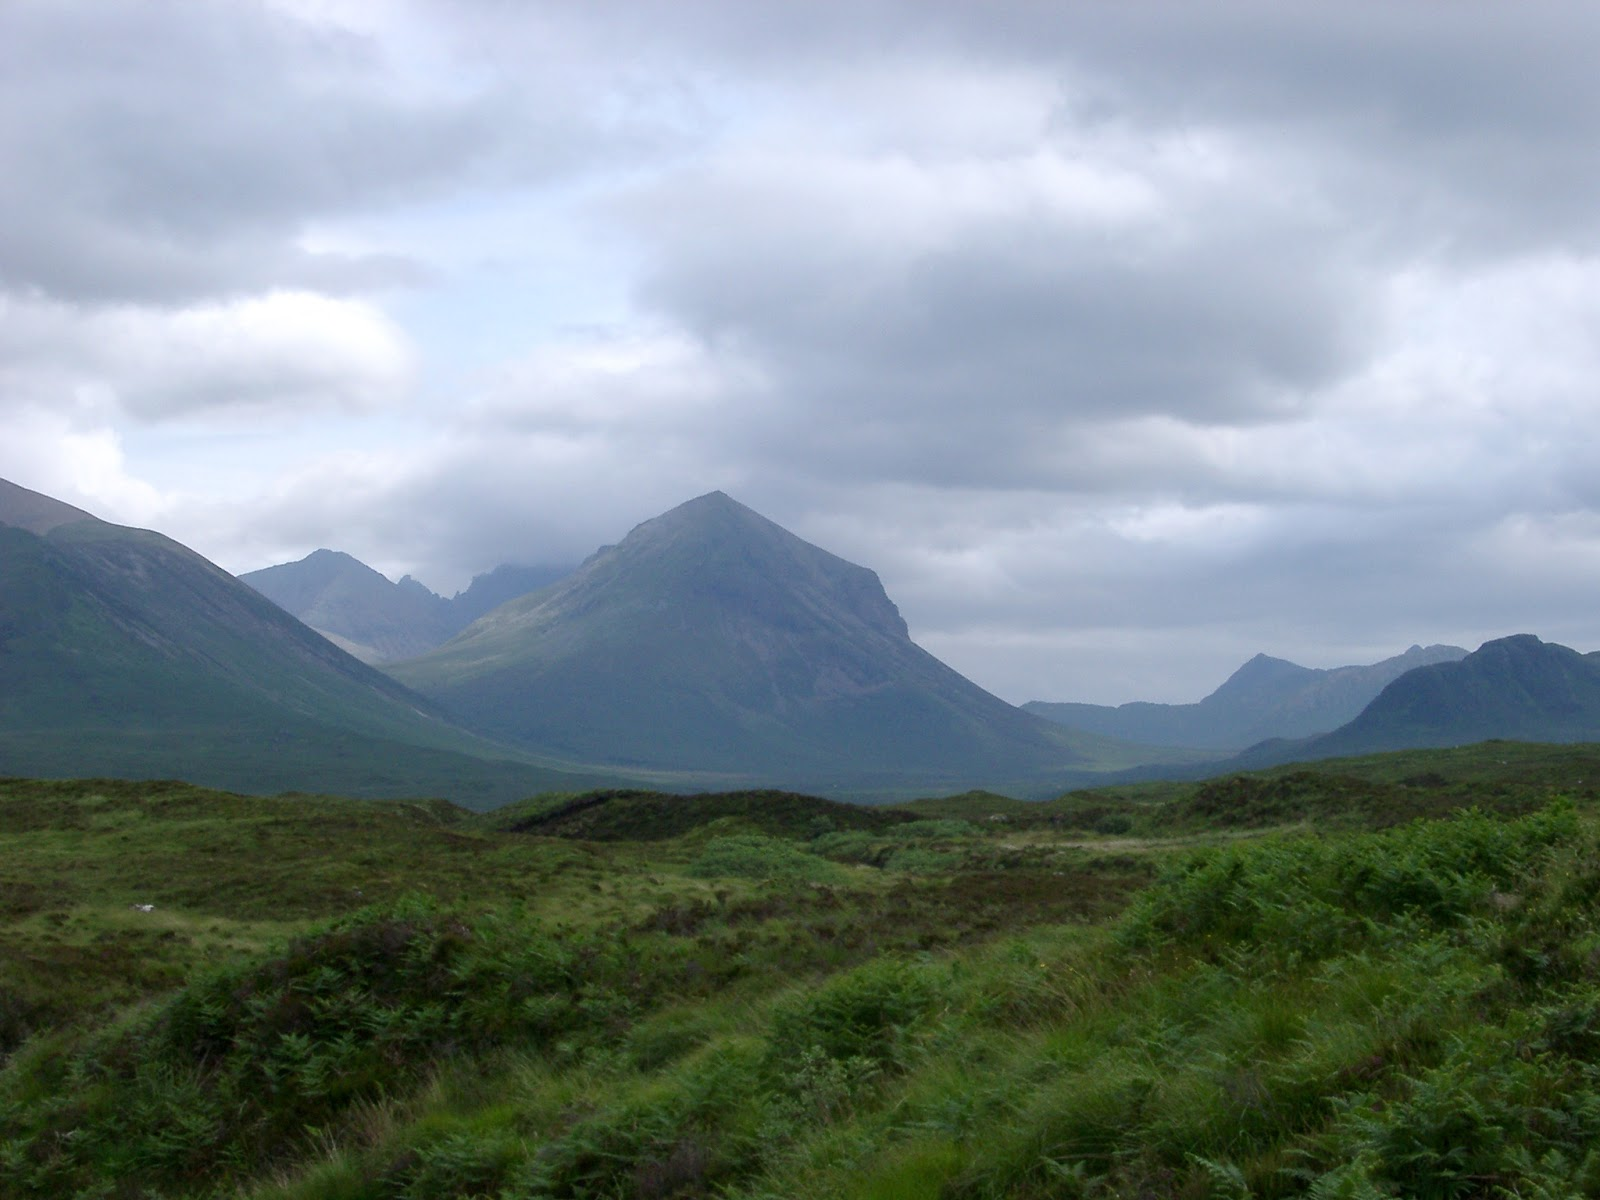 Mountain Pictures: Mountains Scotland